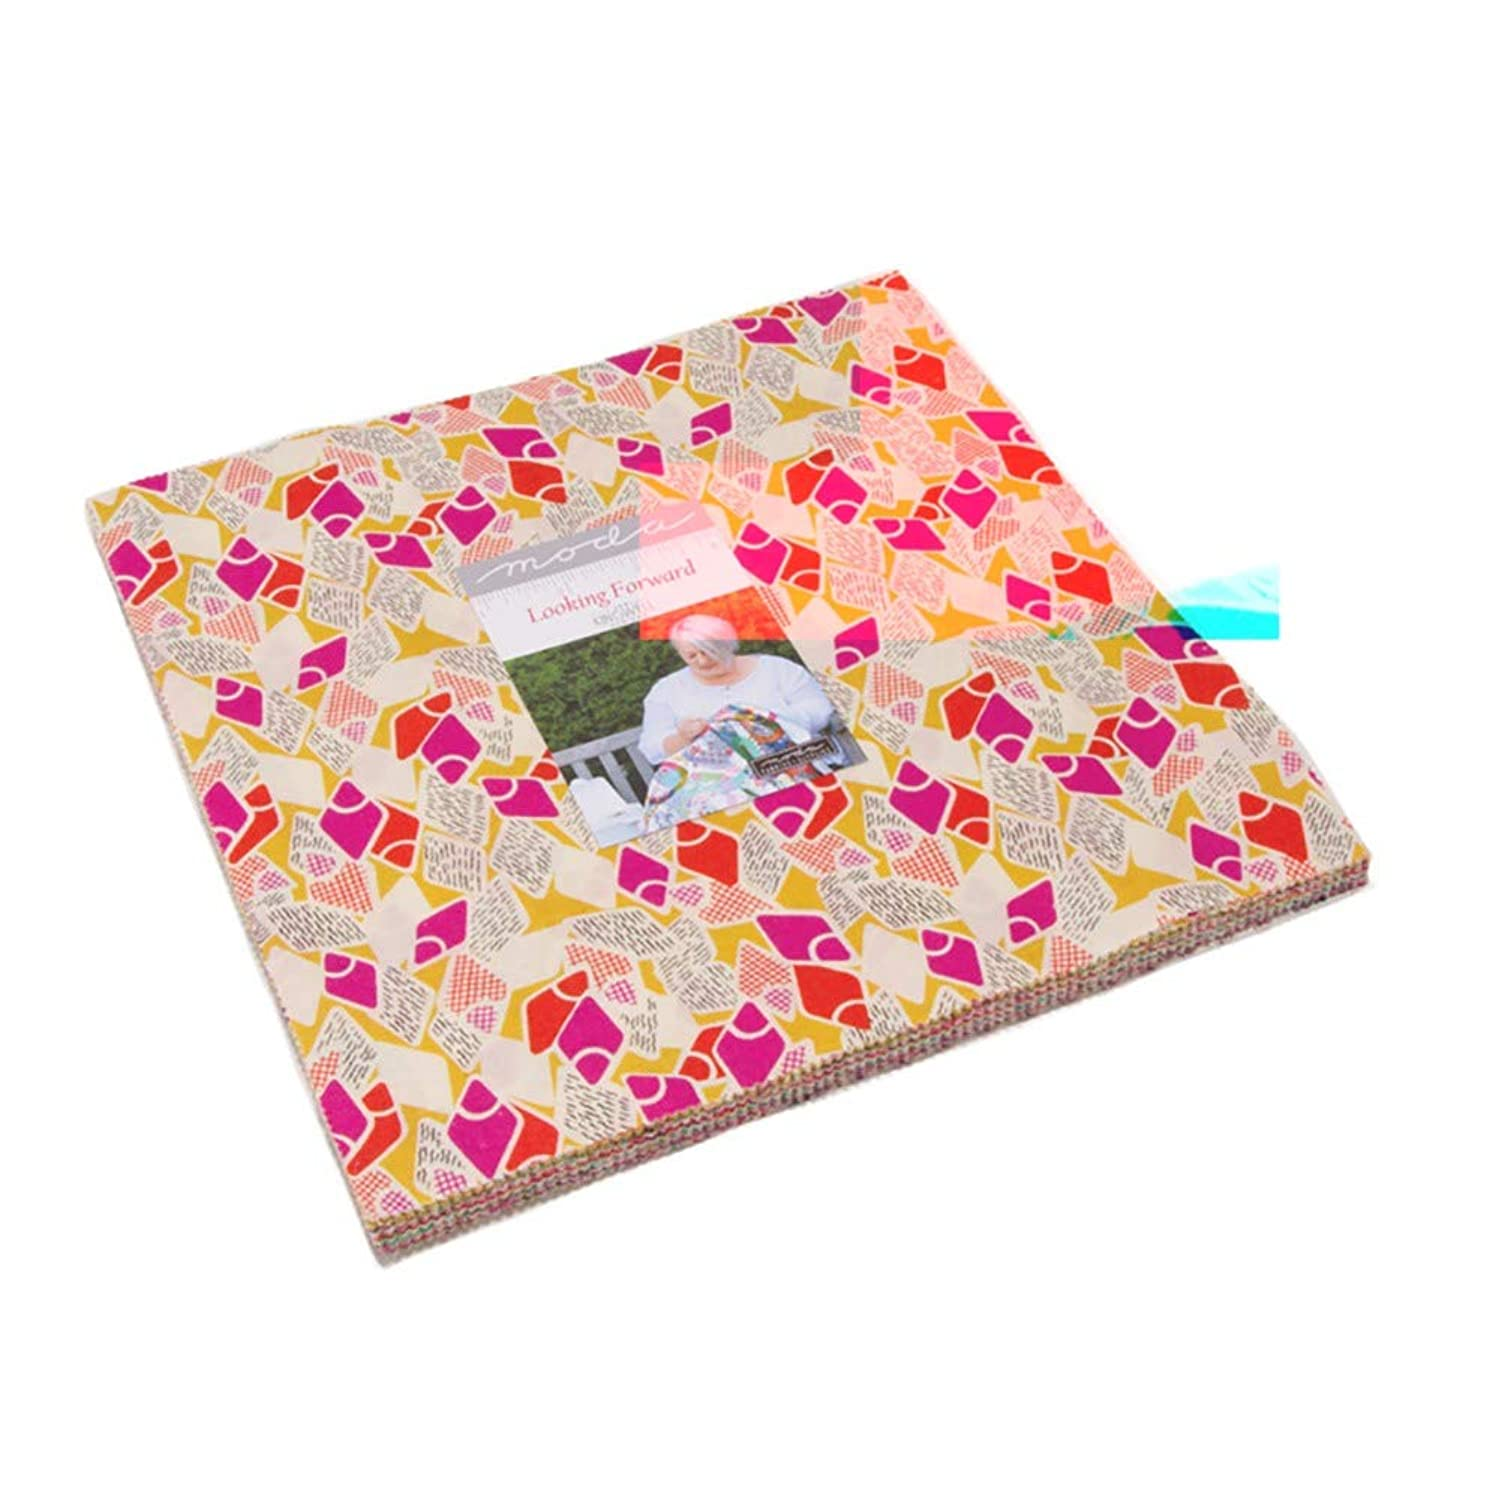 Jen Kingwell Looking Forward Layer Cake 42 10-inch Squares Moda Fabrics 18141LC